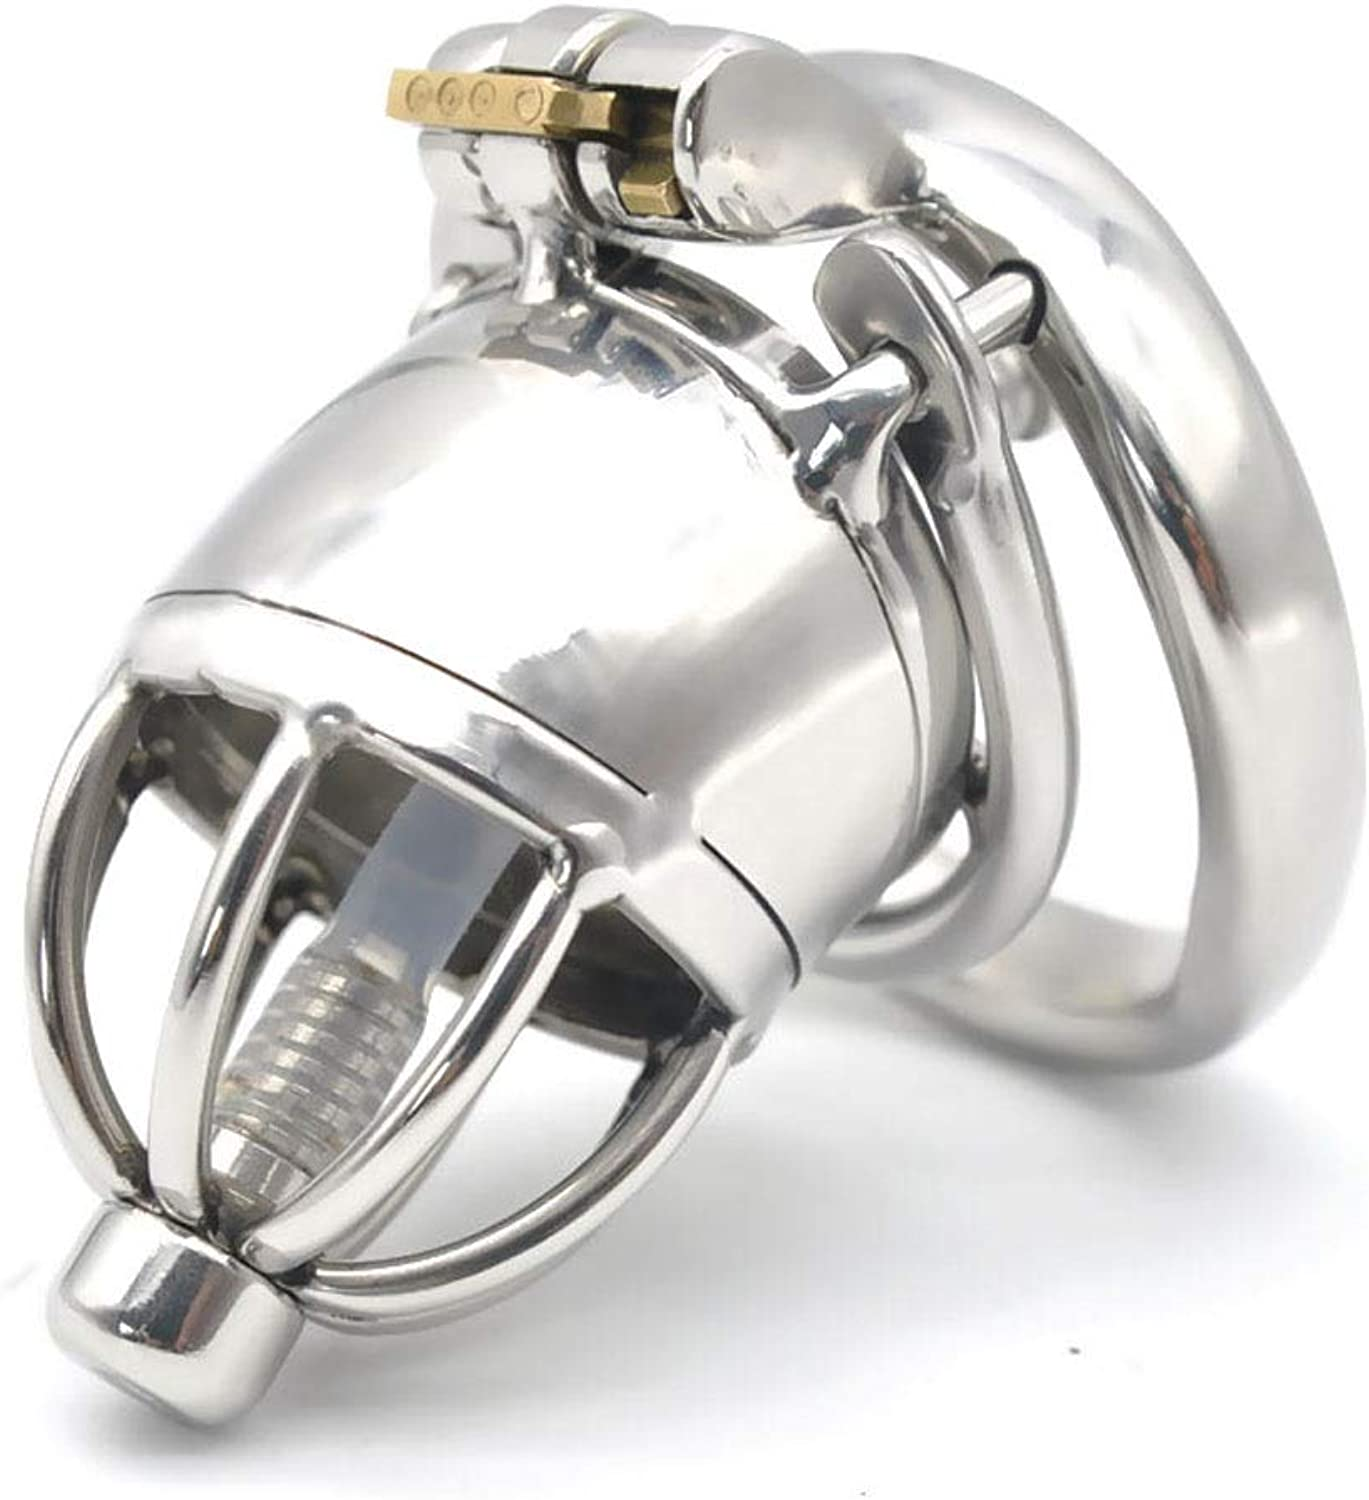 HLJ Stainless Steel Men's Fun Toys are Polished Smooth